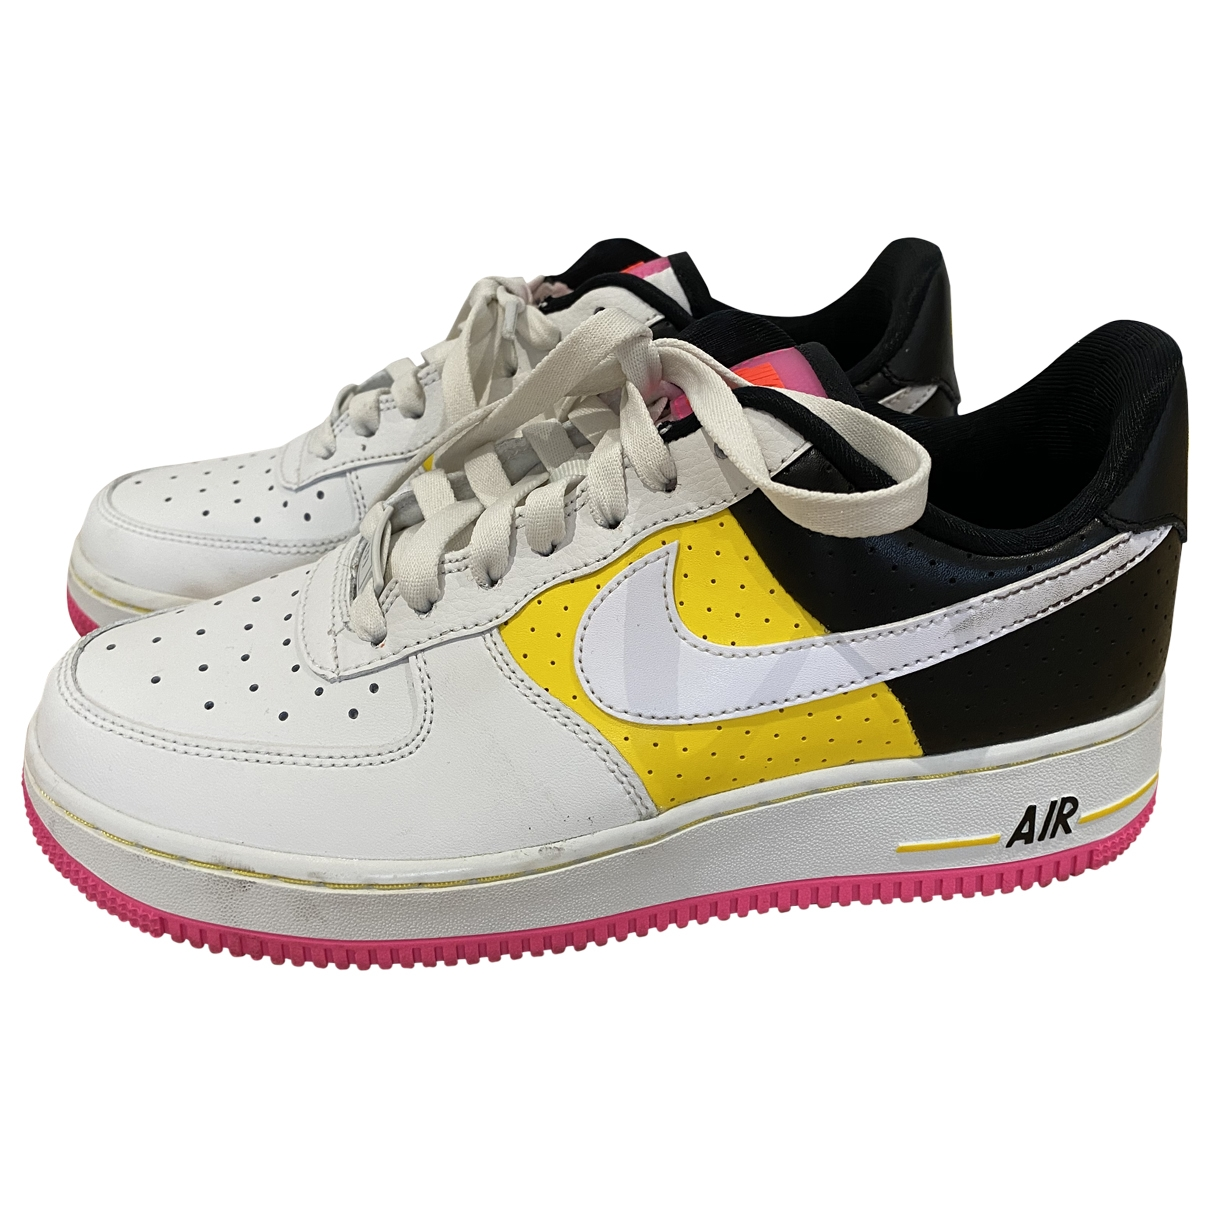 Nike Air Force 1 White Leather Trainers for Women 5 UK